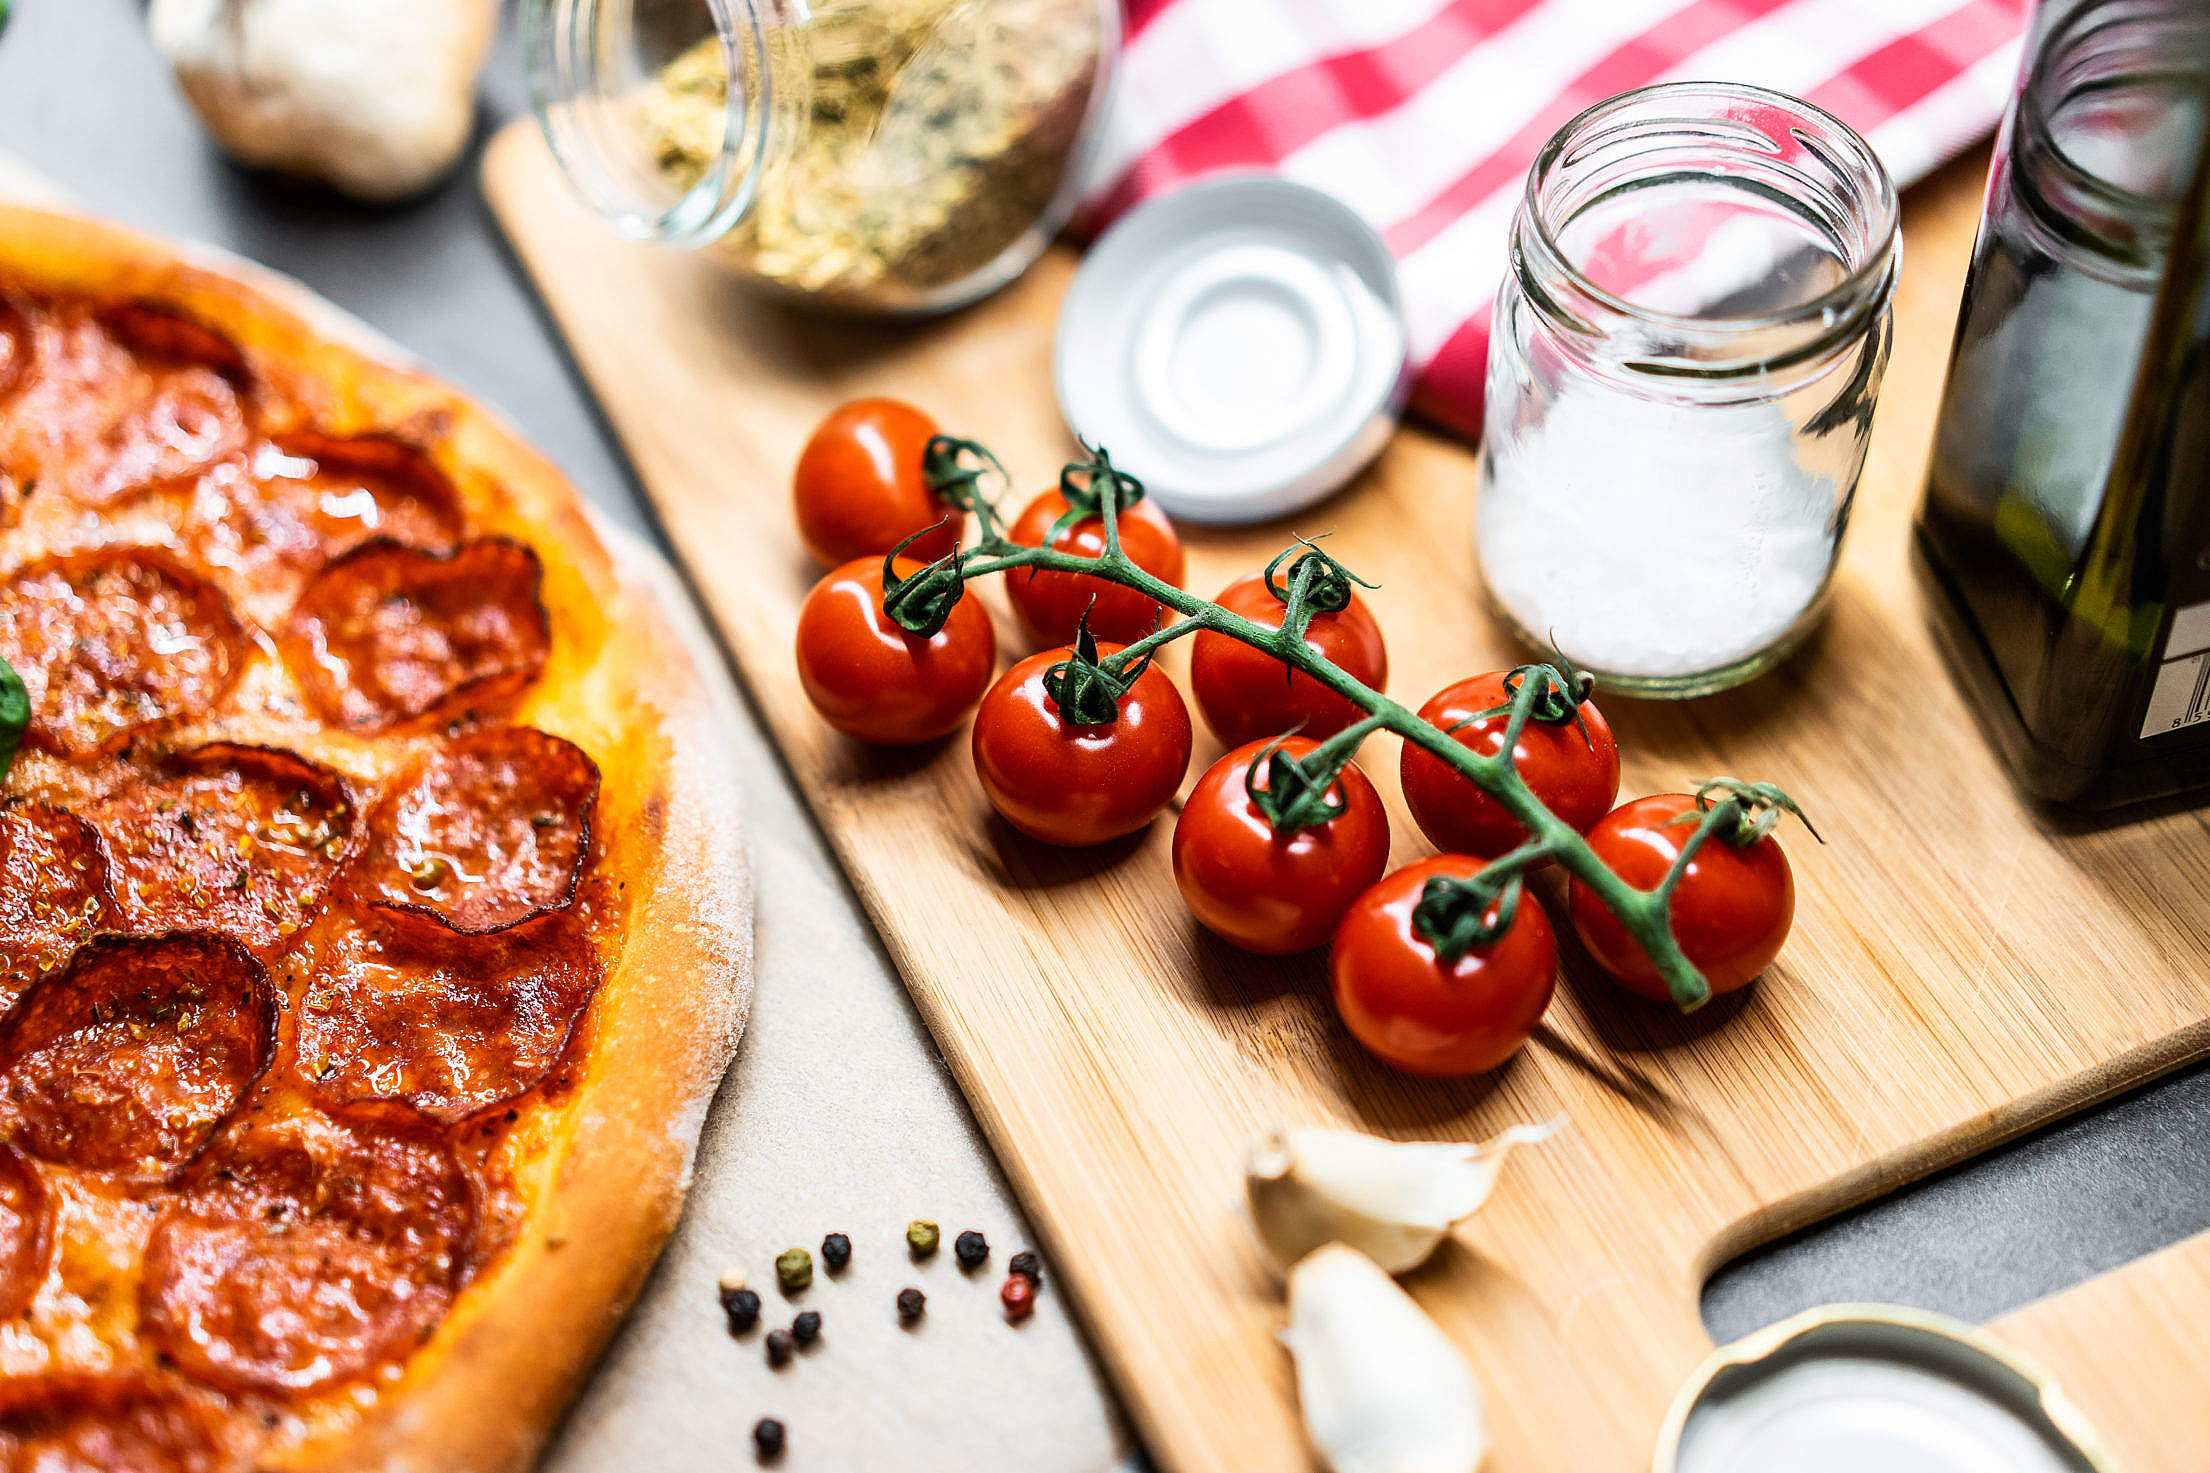 Cherry Tomatoes and Pizza Free Stock Photo